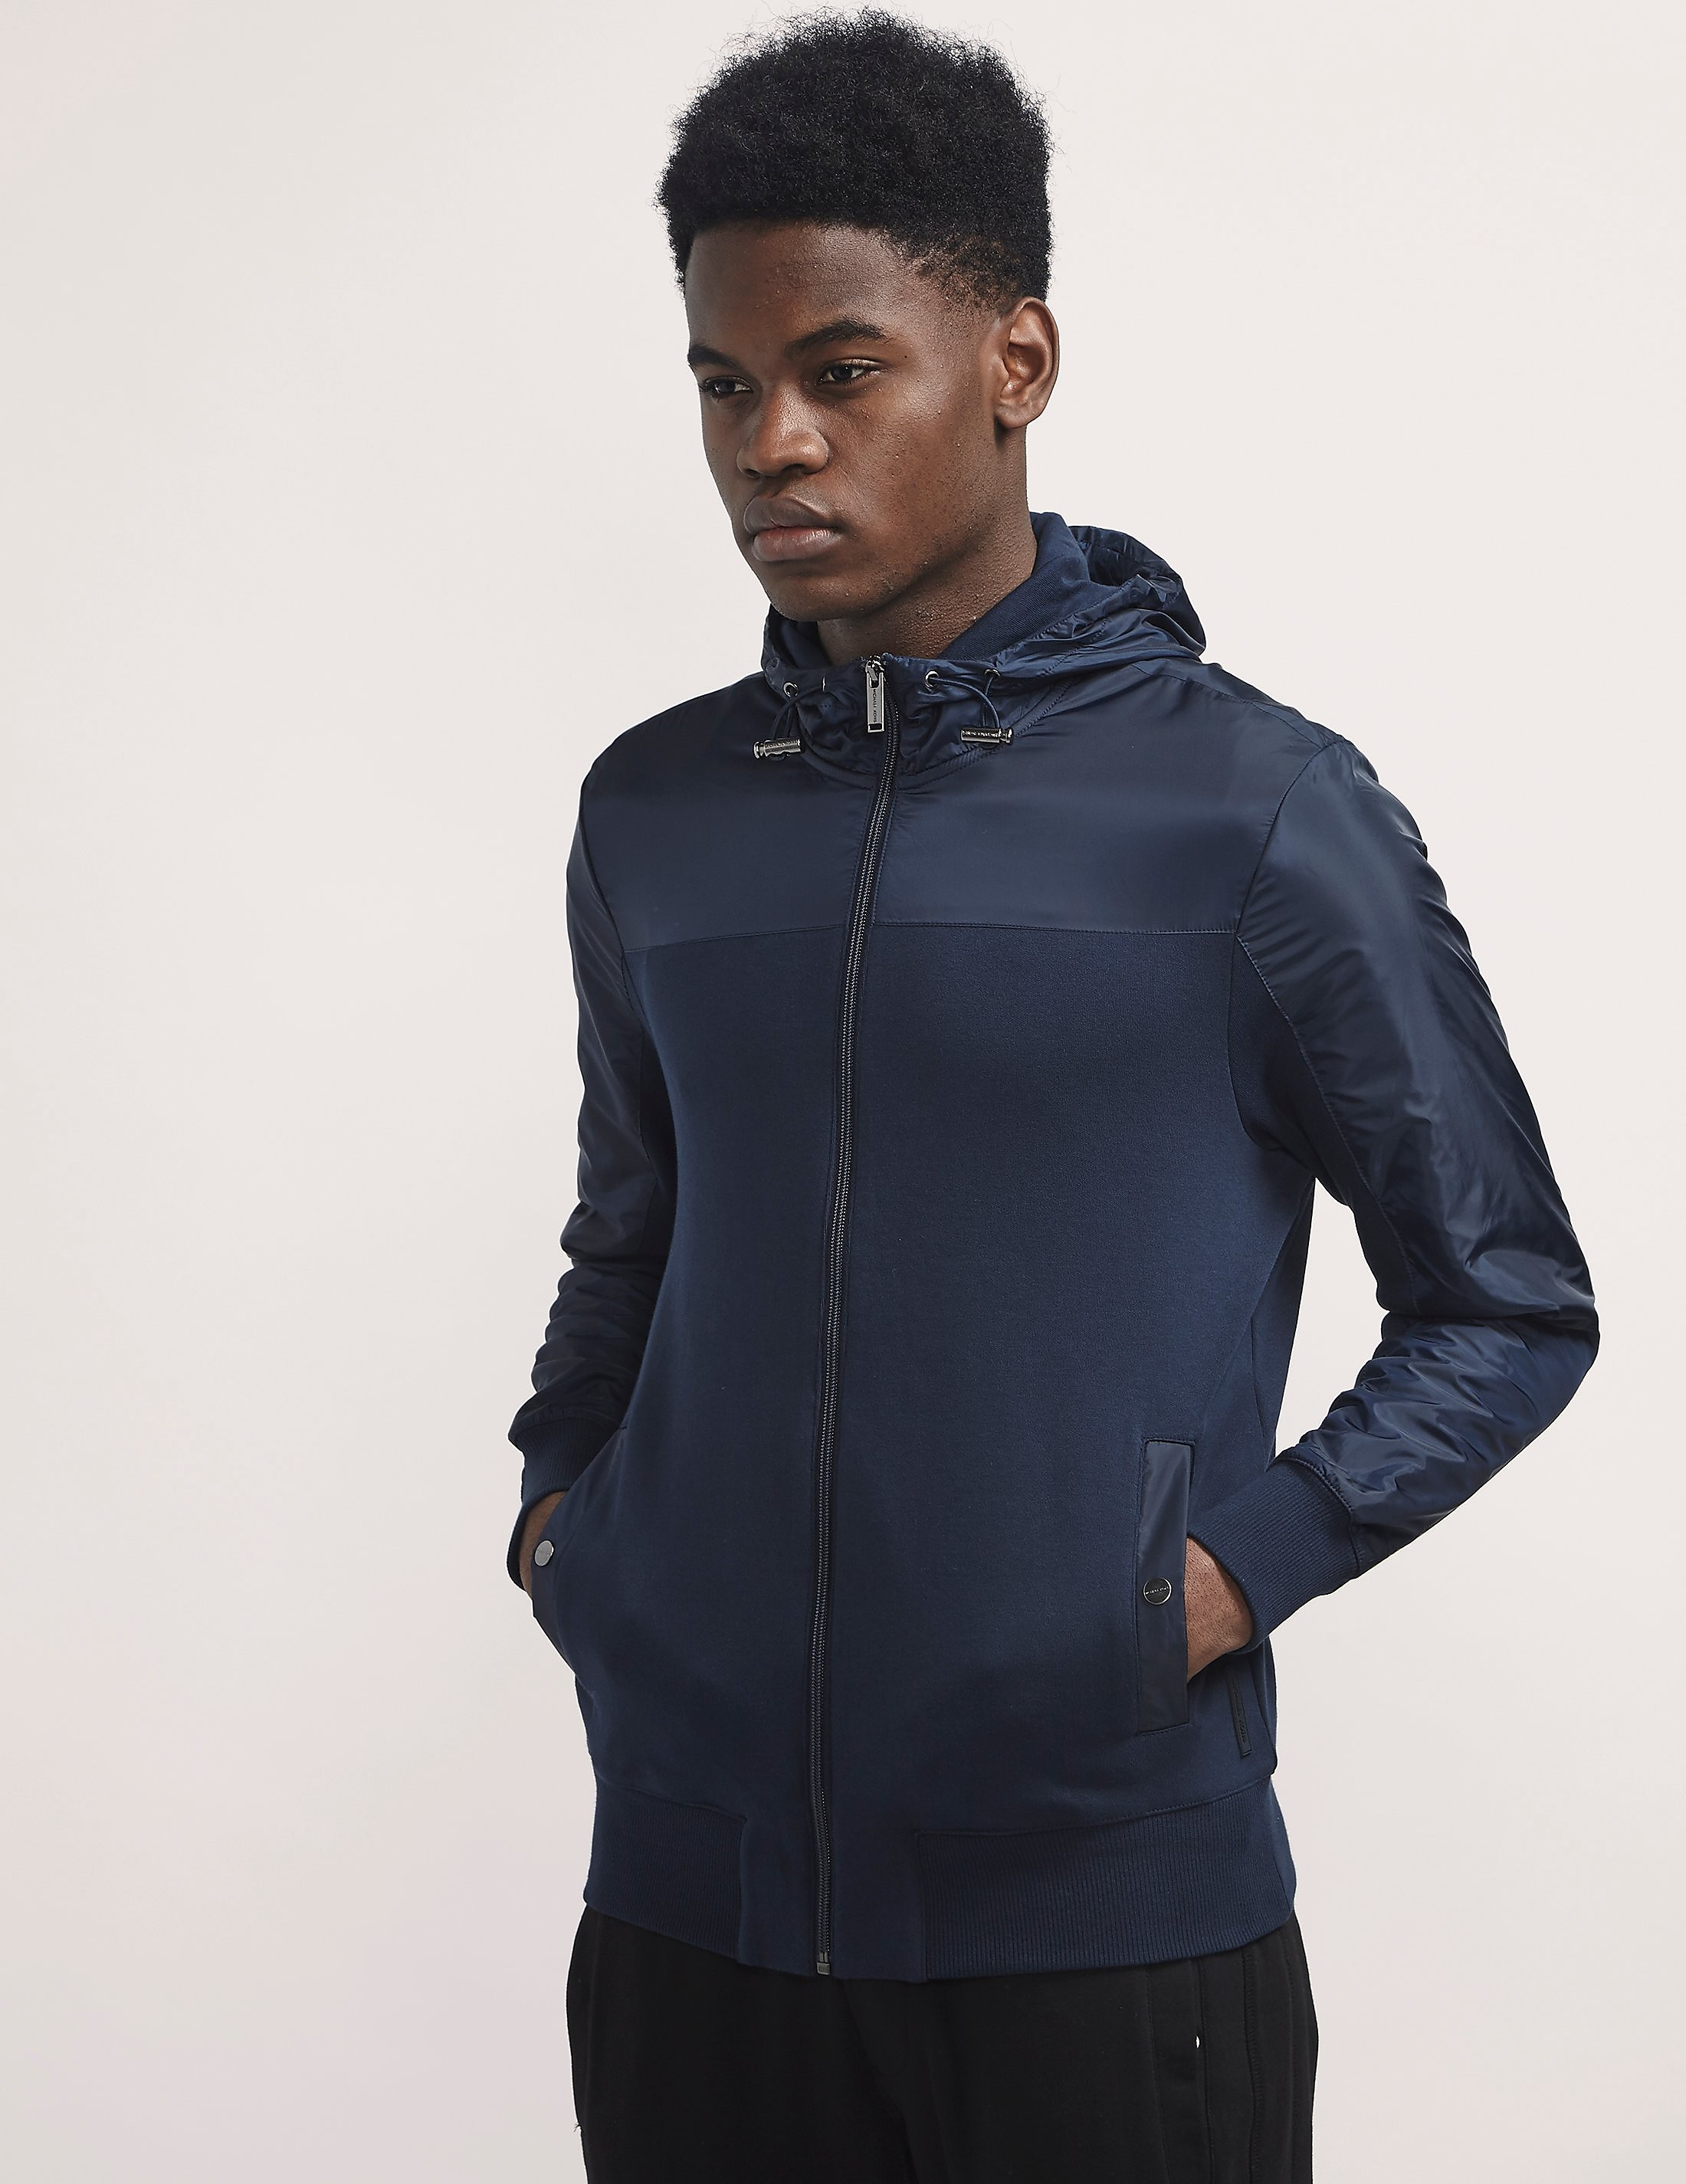 Michael Kors Nylon Panel Track Top